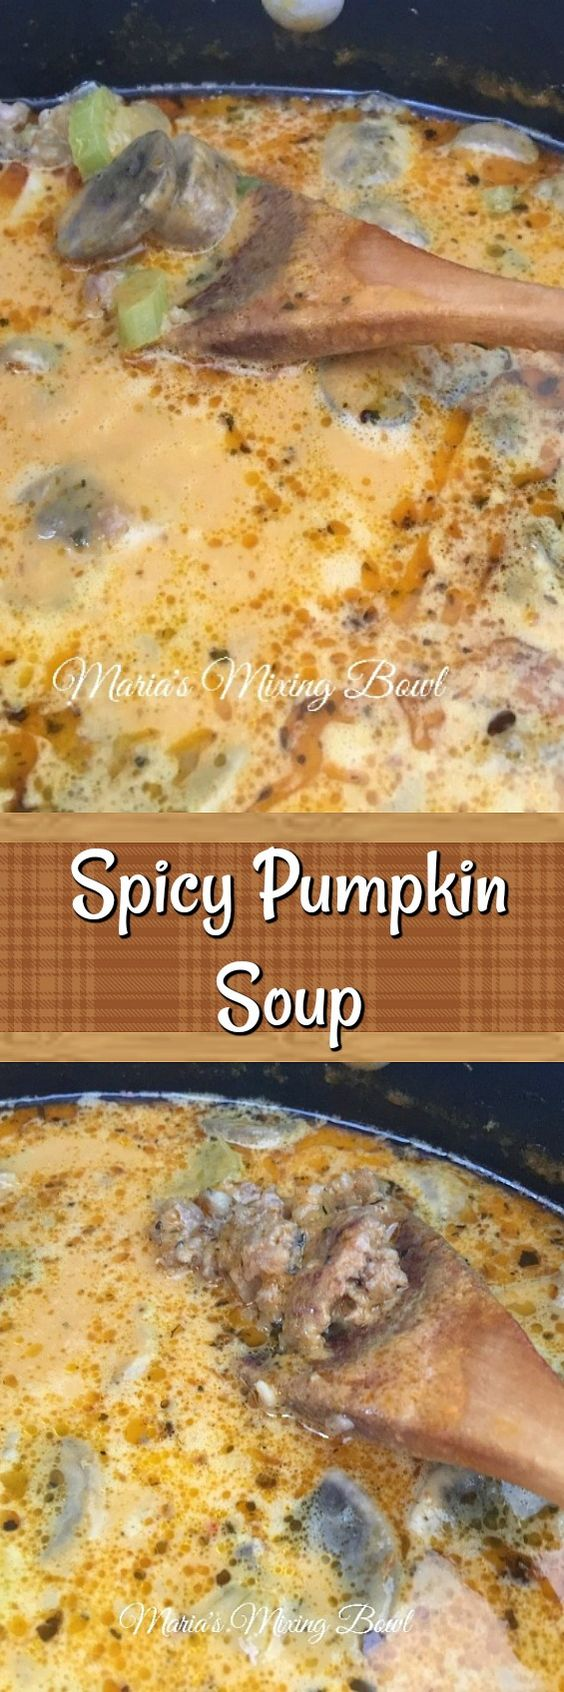 This is the best spicy pumpkin soup!  It is full of flavor and has just enough spice in it. We love it and make it all the time. Yes even in the summer months. It's that good. But it's a hearty and warming soup perfect for warming up on a cold day.